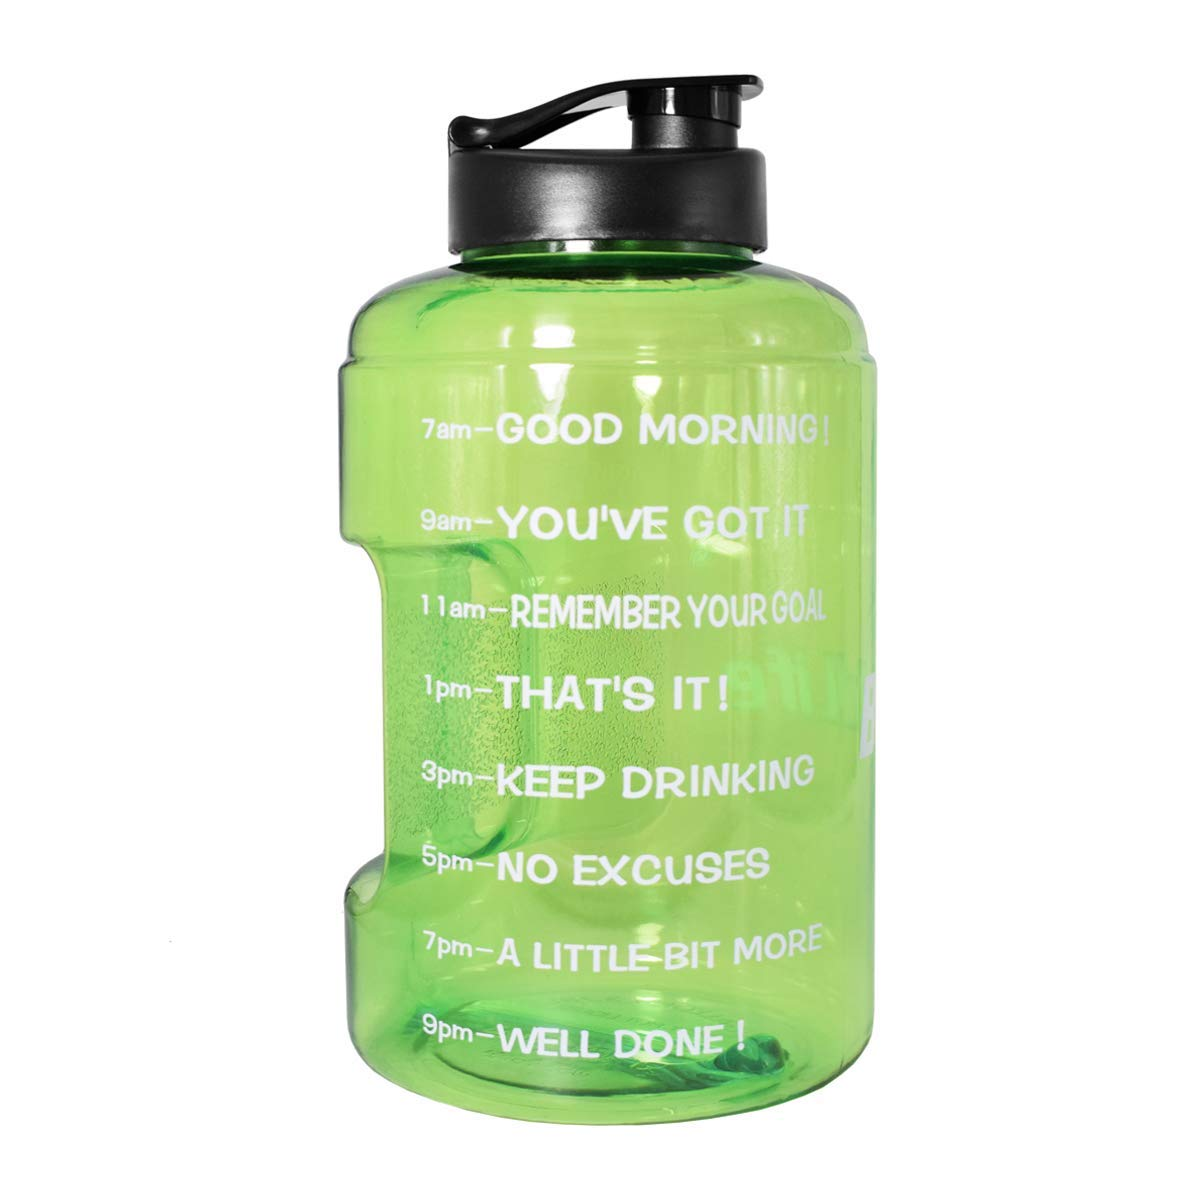 BuildLife 1 Gallon(128OZ) Sports Water Bottle Inspirational Fitness Workout Wide Mouth with Time Marker Measuring Your H2O Intake BPA Free (1 Gallon, Green)